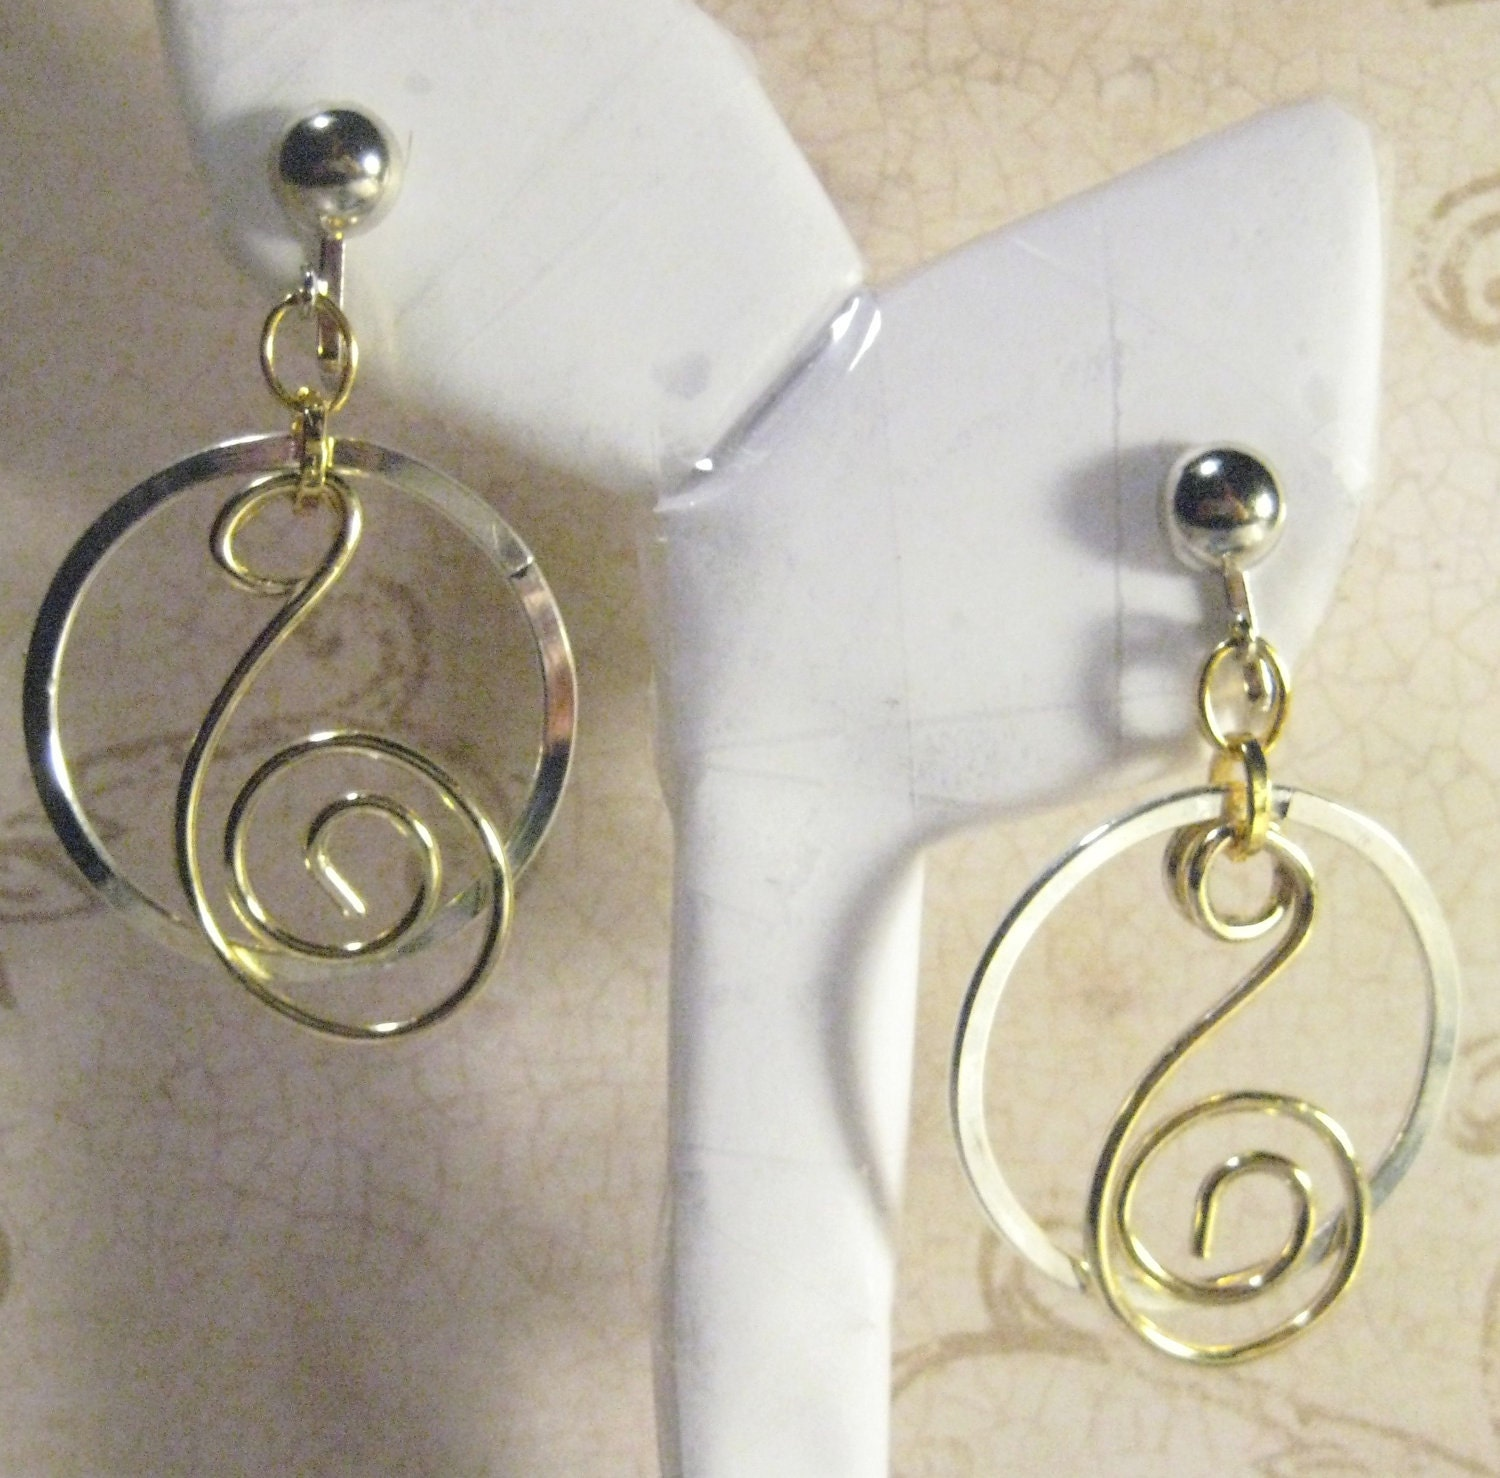 Handmade Artisan Wire Wrap Silver and Gold Clip On Hoop Earrings